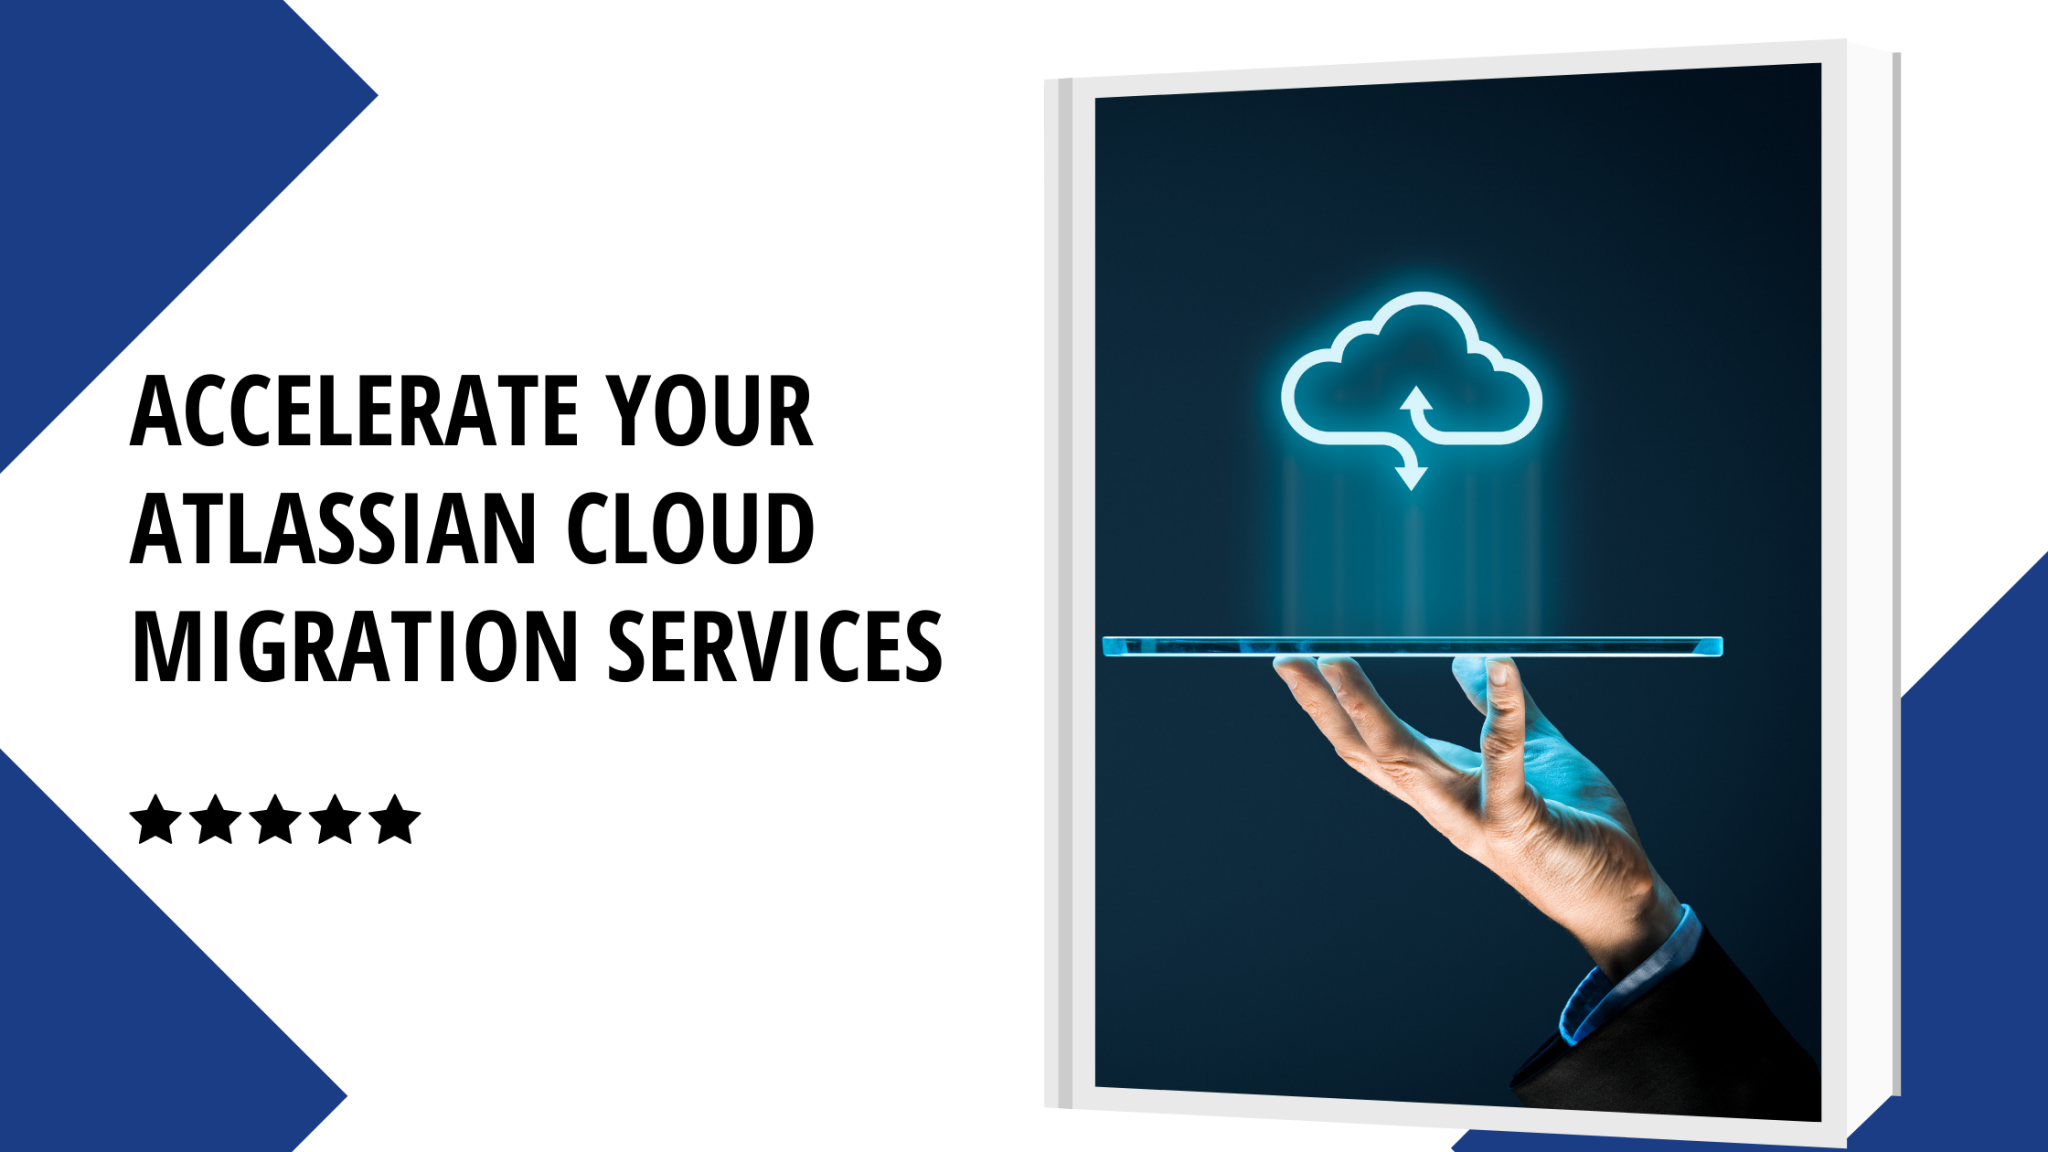 Atlassian Cloud migration services